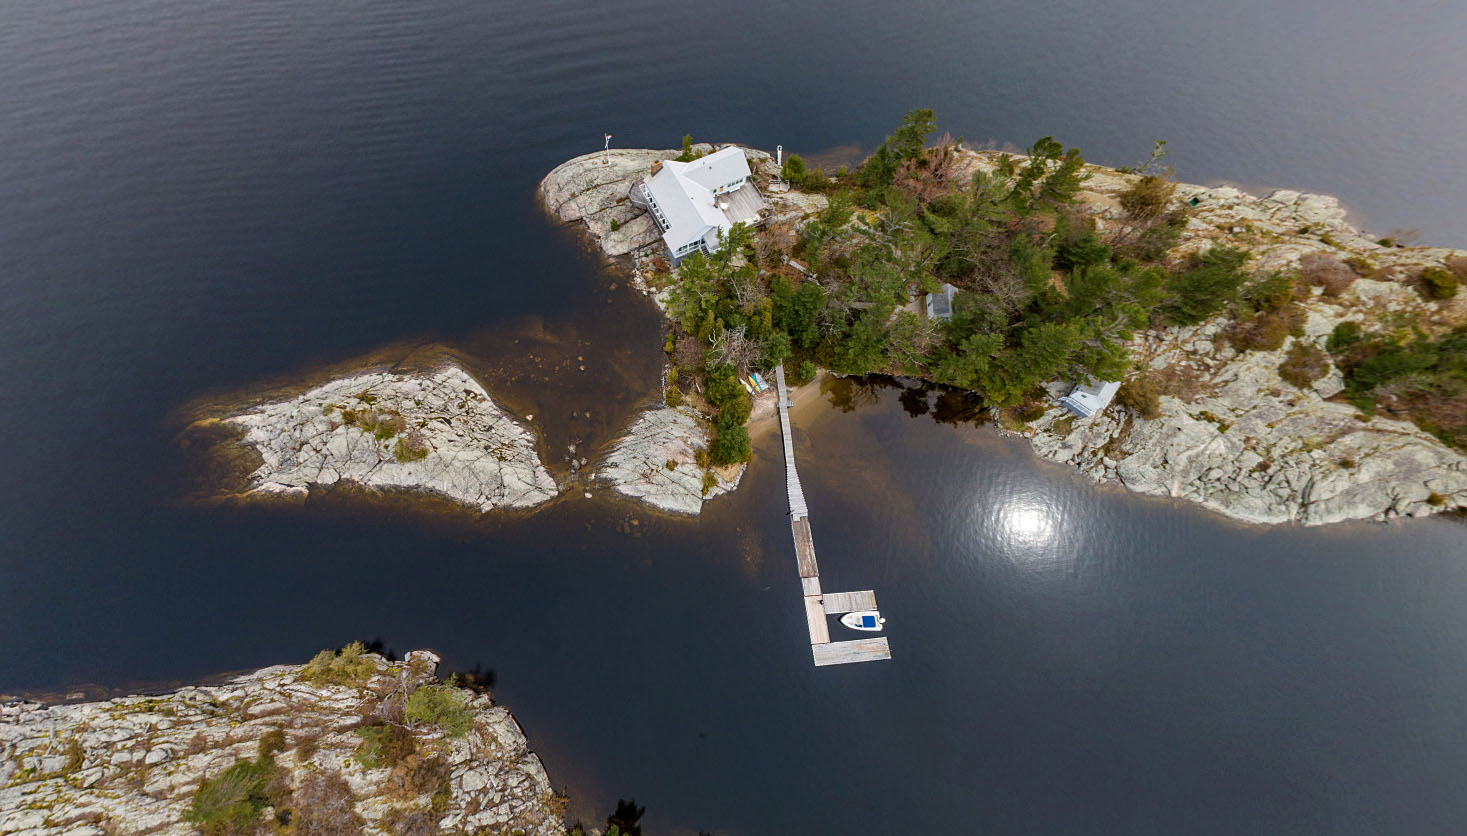 Cottage Island Property for Sale in Cognashene Ontario, Talbot Islands from Moffat Dunlap Real Estate